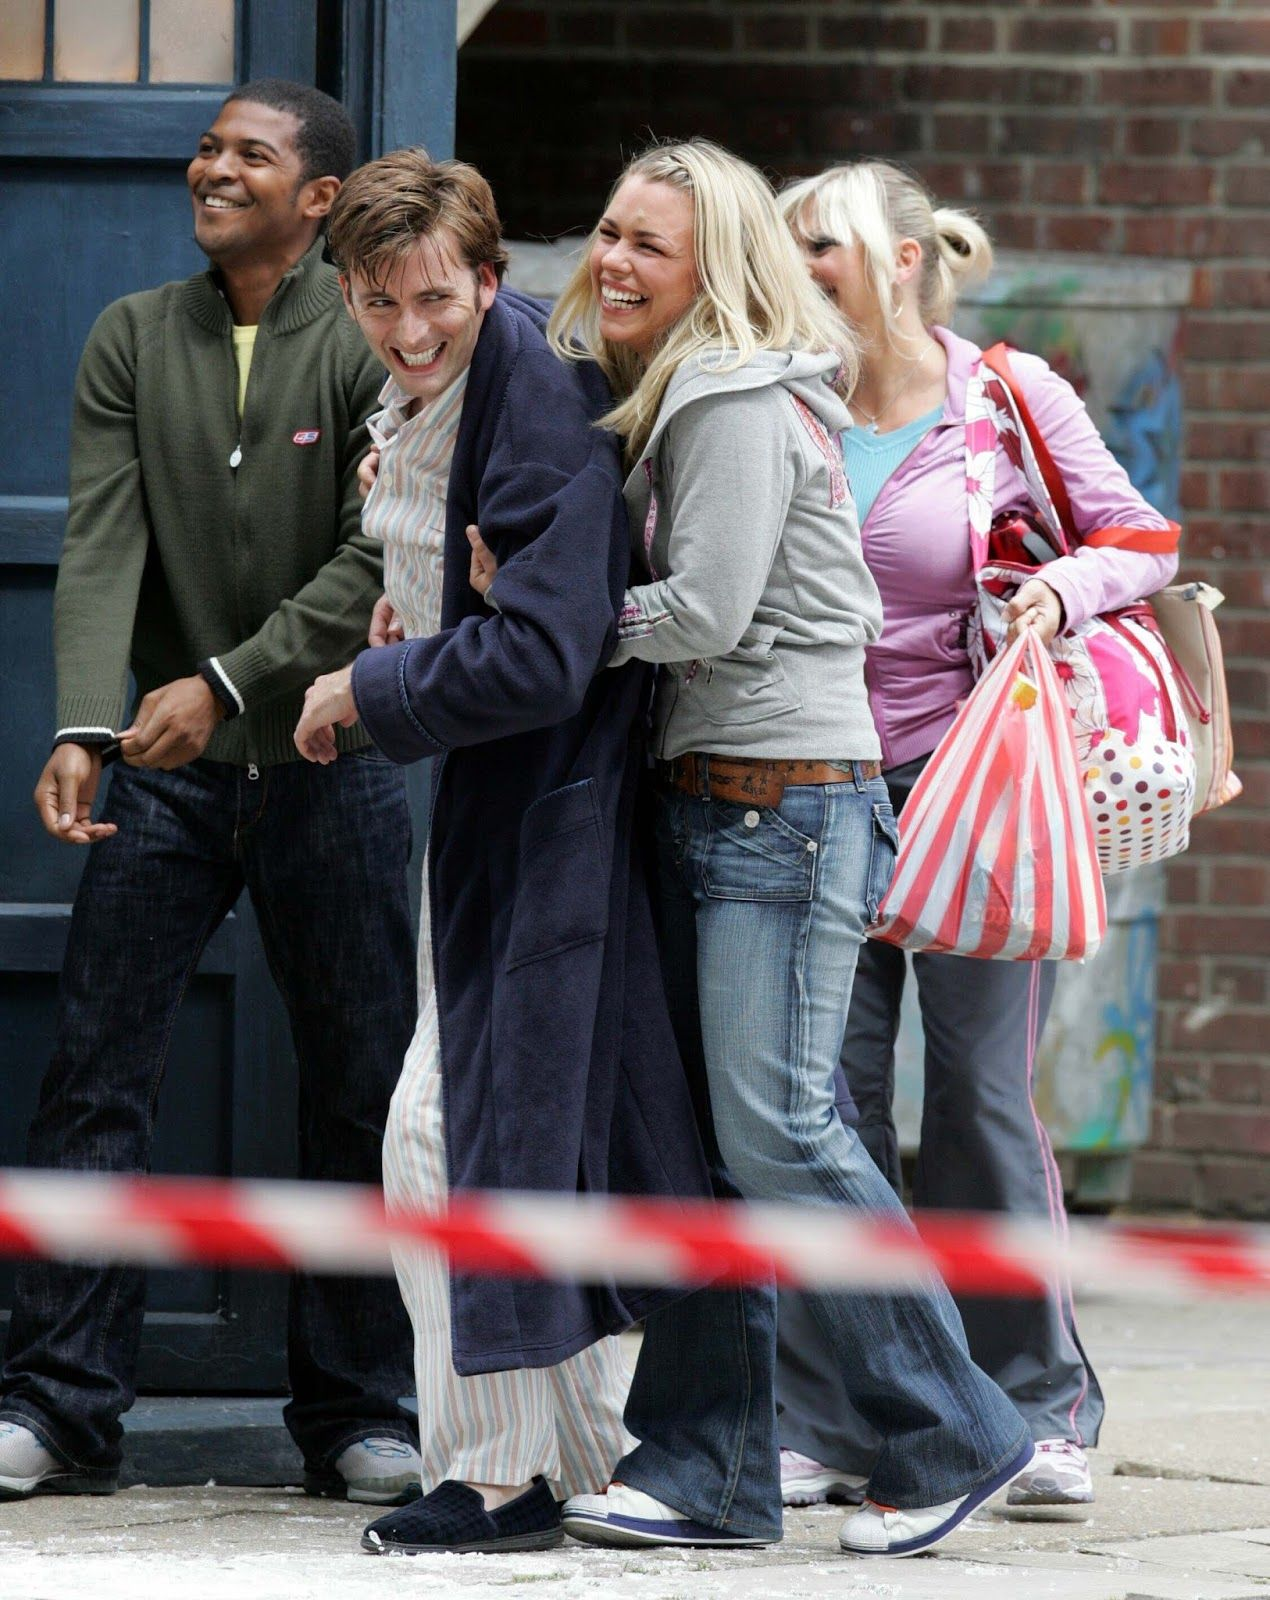 PHOTO OF THE DAY - 15th November 2015: David Tennant on set of Doctor Who with Billie Piper, Noel Clarke & Camille Coduri (2005)